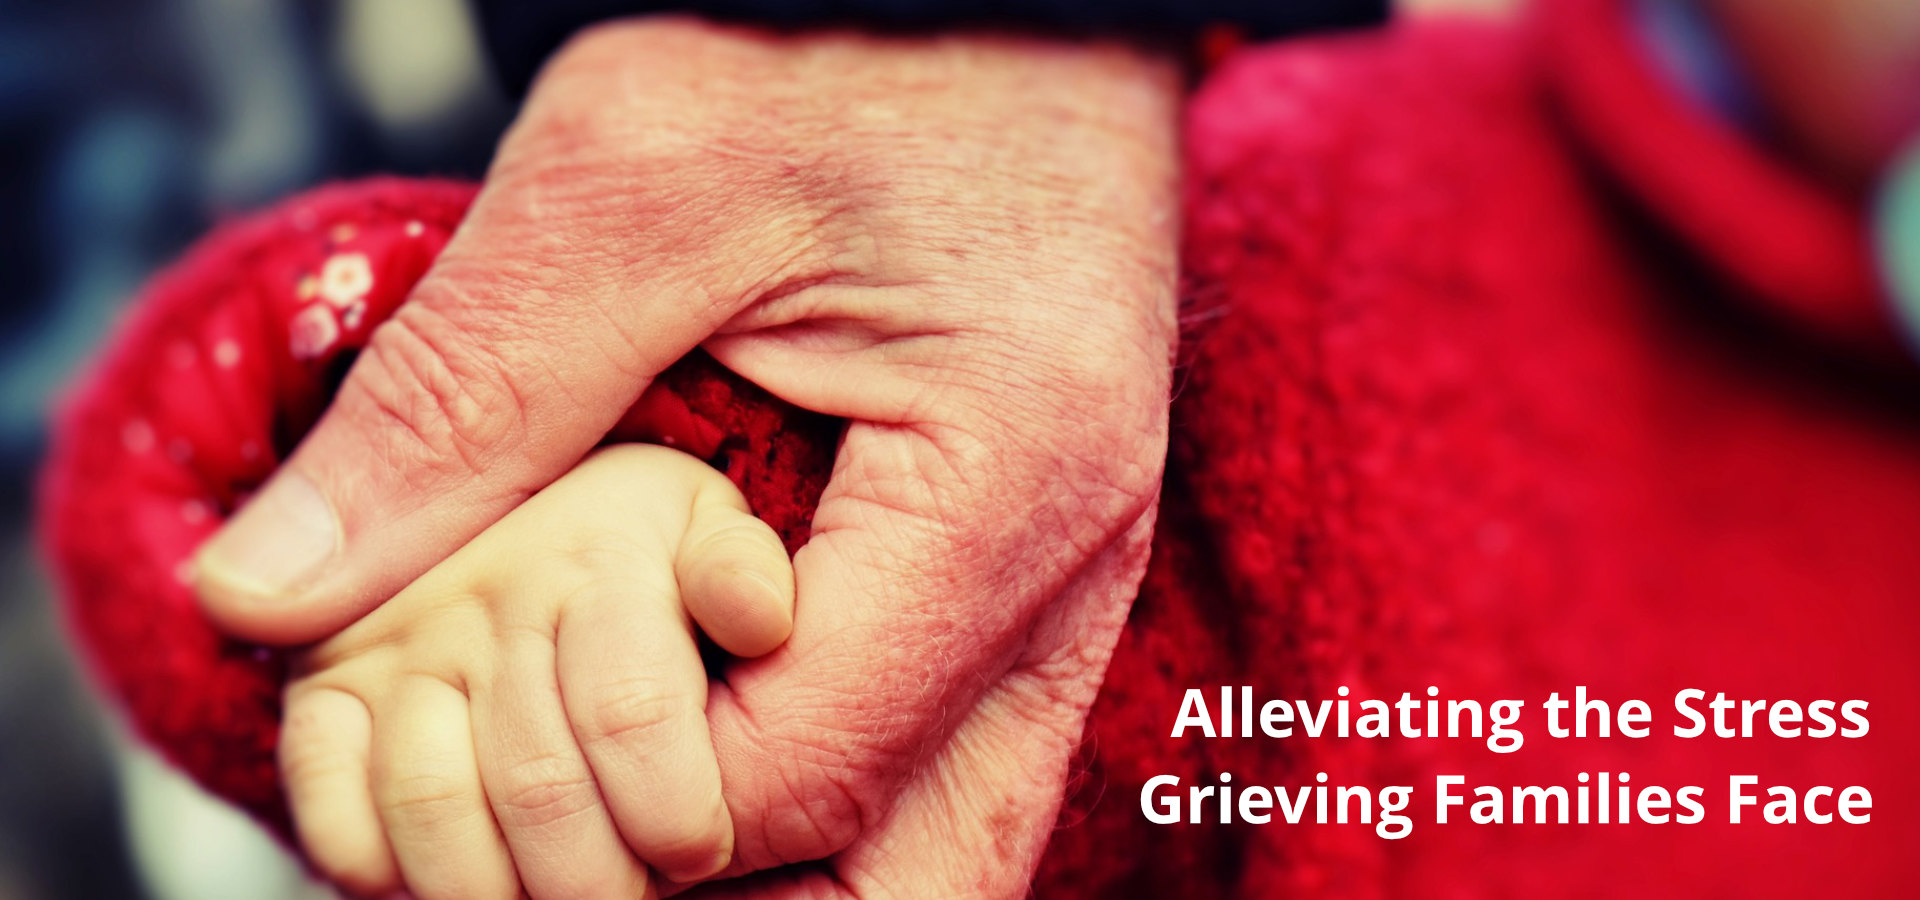 Alleviating the Stress Grieving Families Face